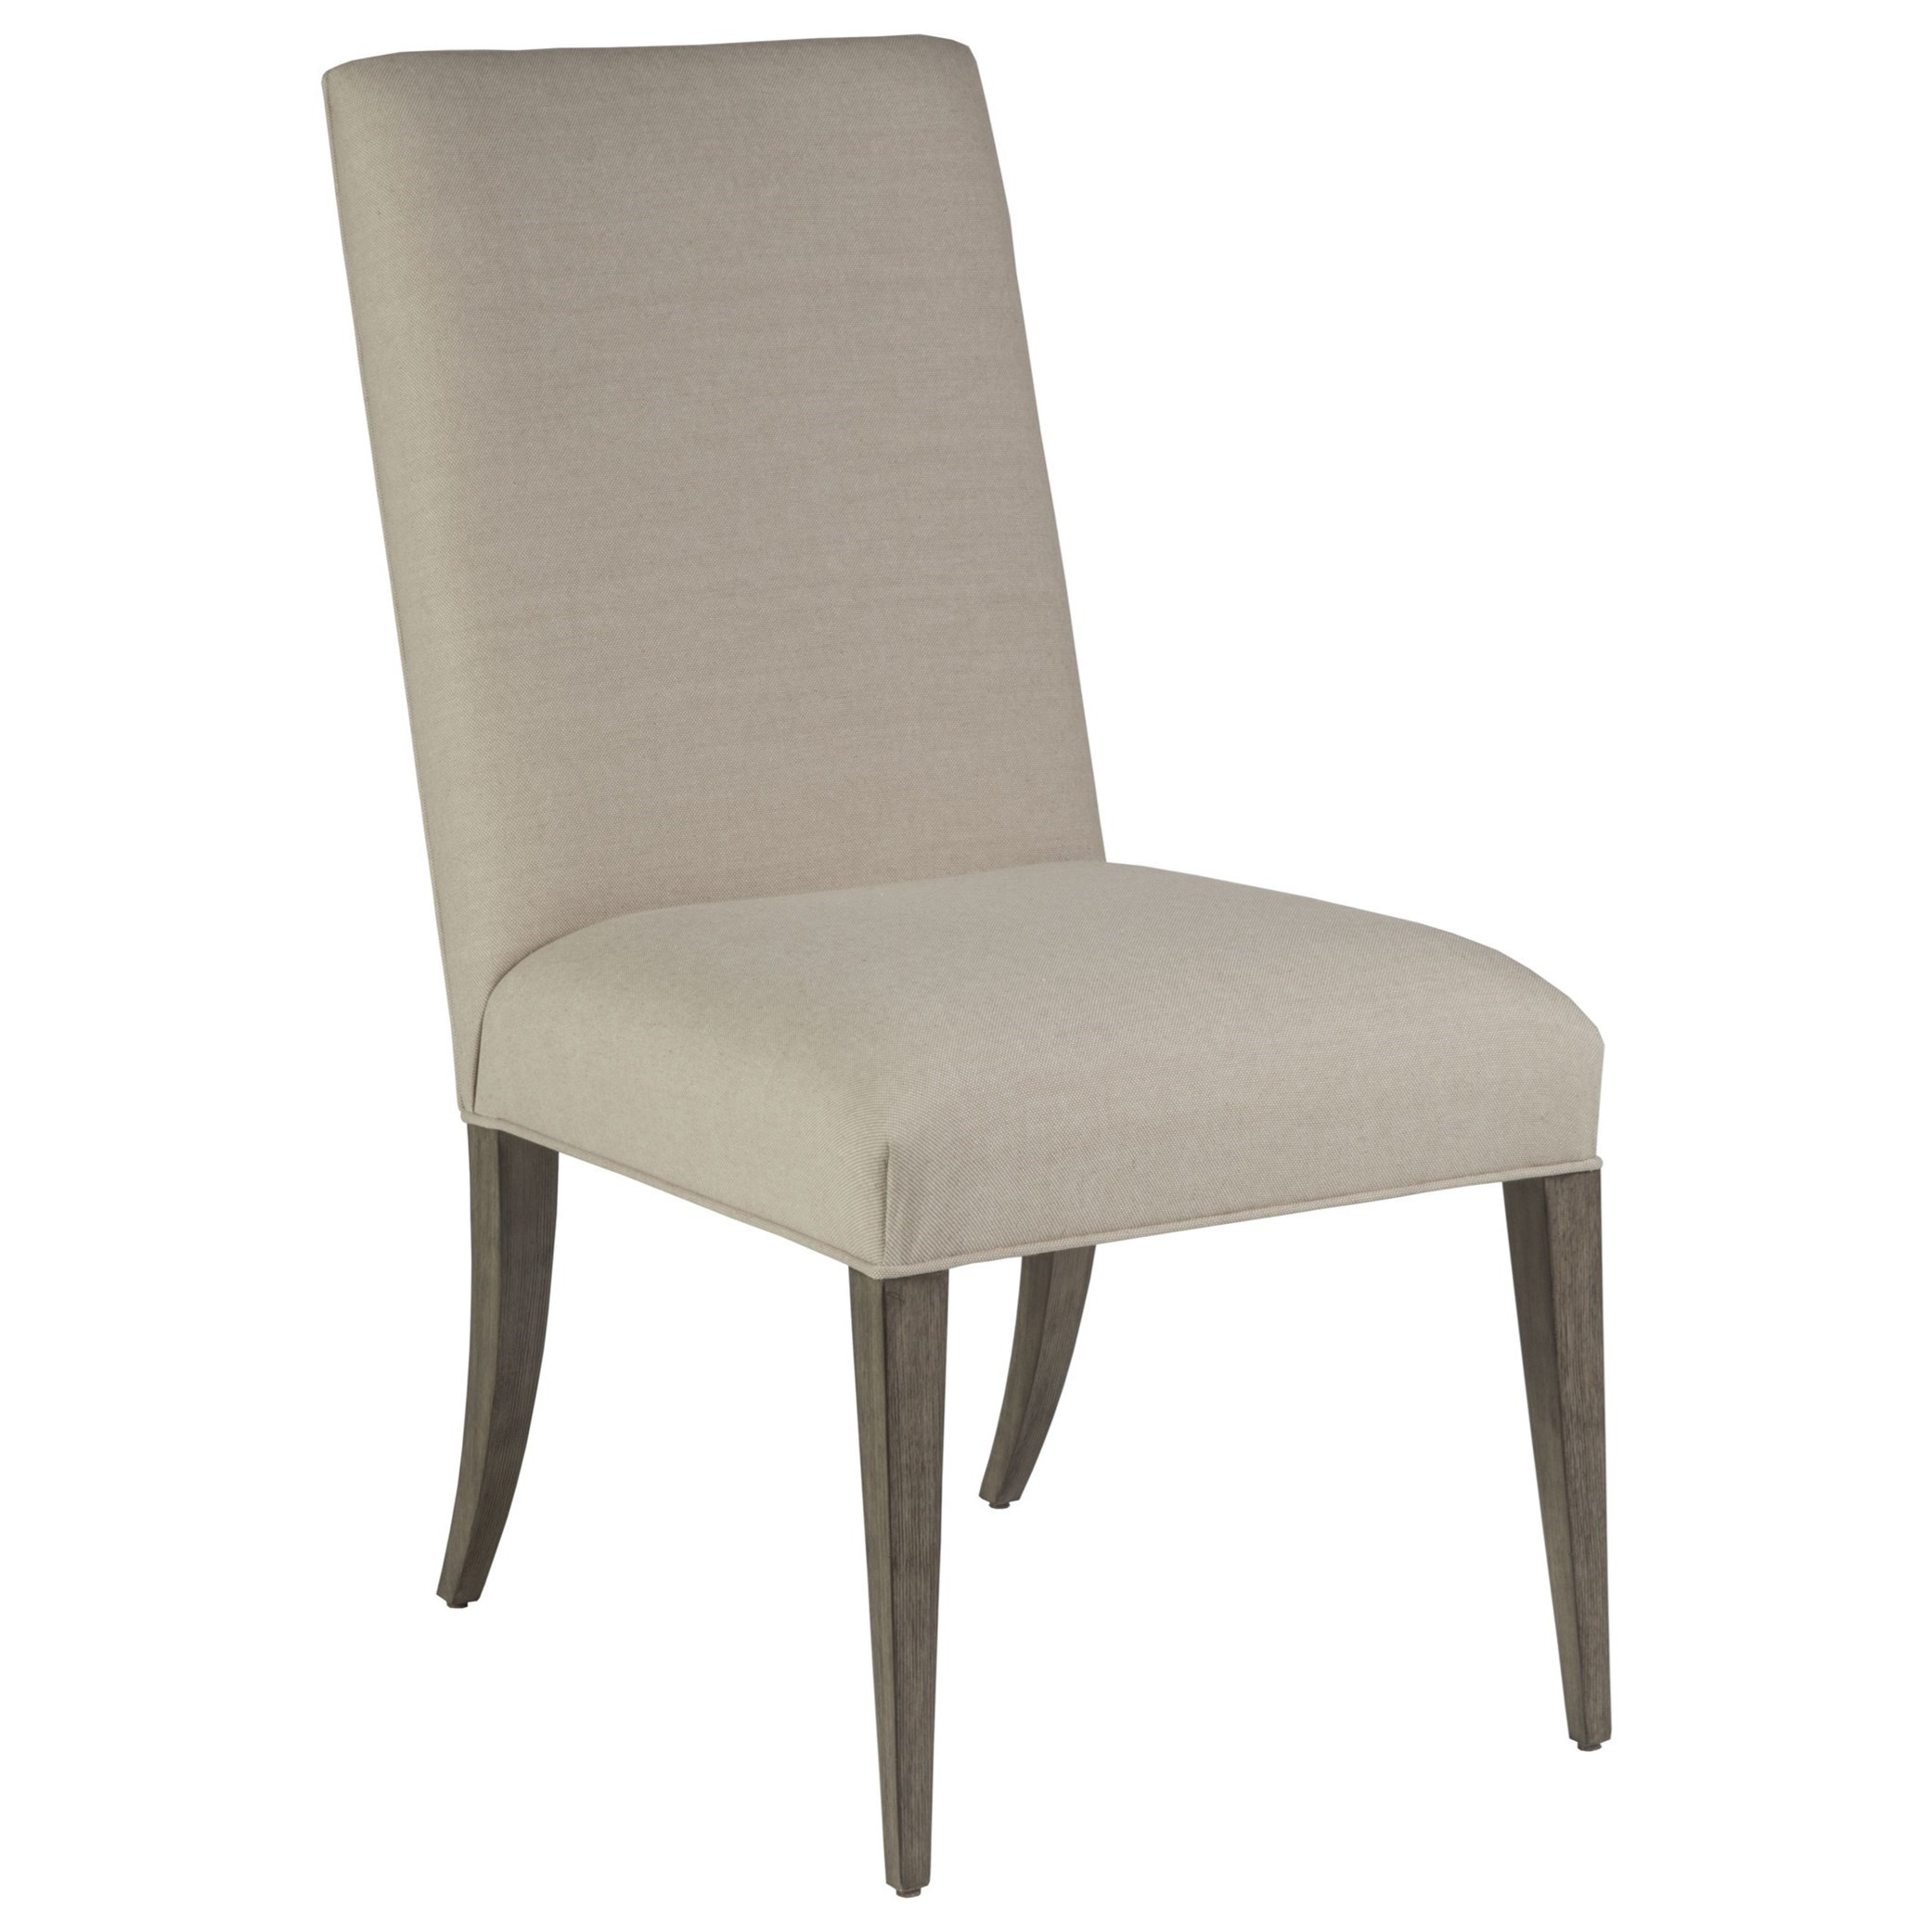 Cohesion Madox Upholstered Side Chair by Artistica at Baer's Furniture